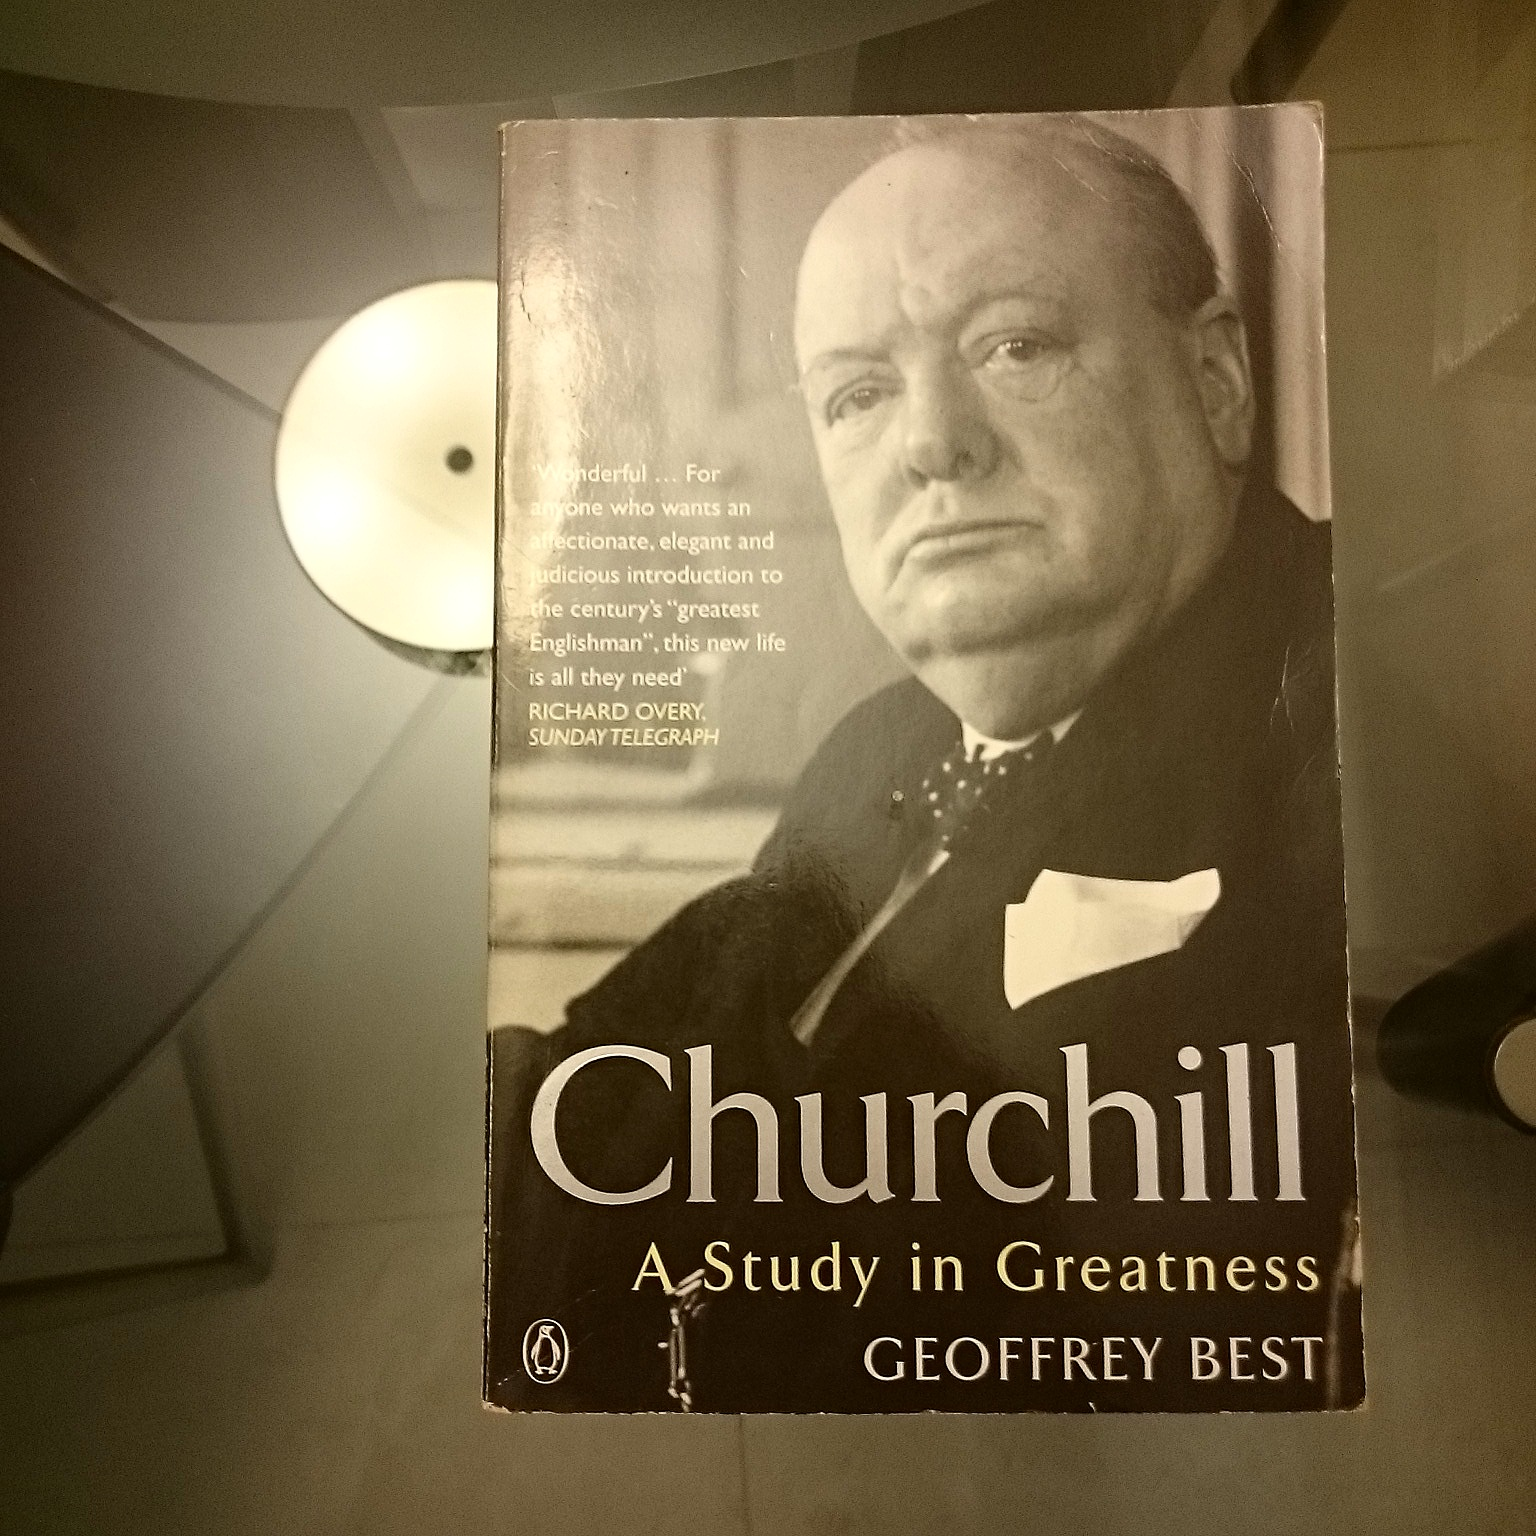 Churchill - A Study in Greatness image